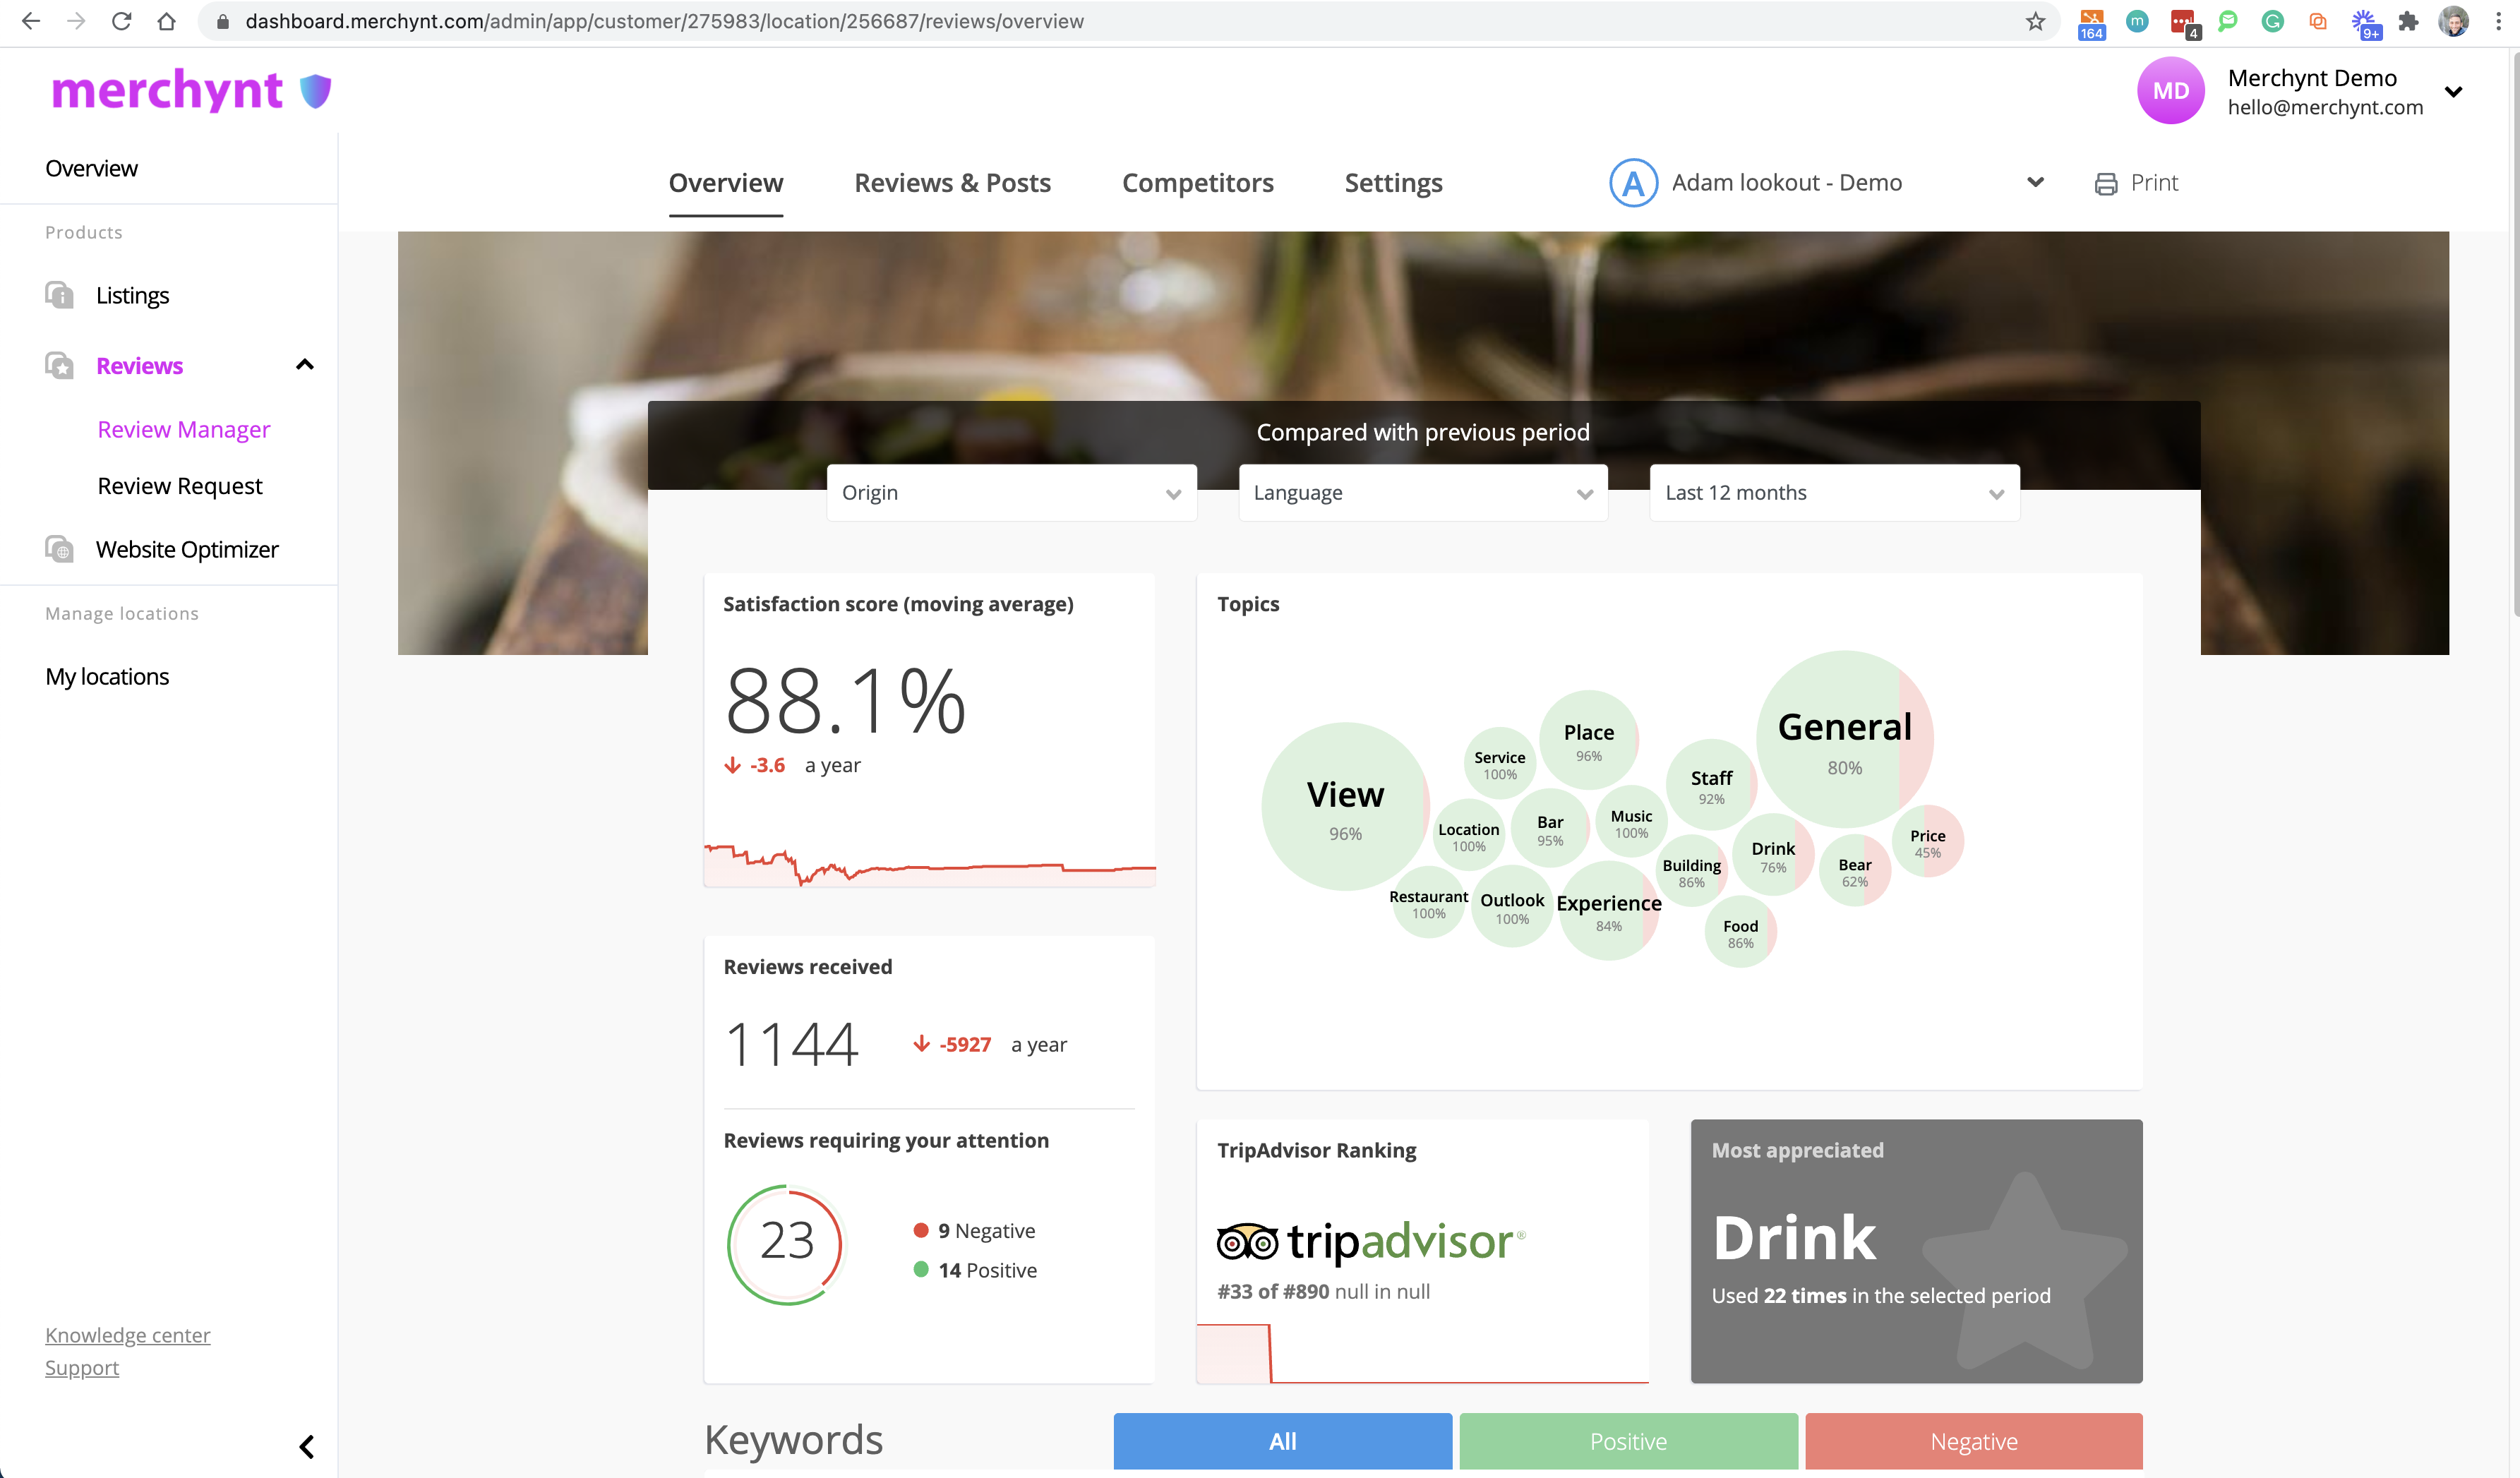 Merchynt review overboard dashboard showing all reviews from all popular review sites in one place for a business